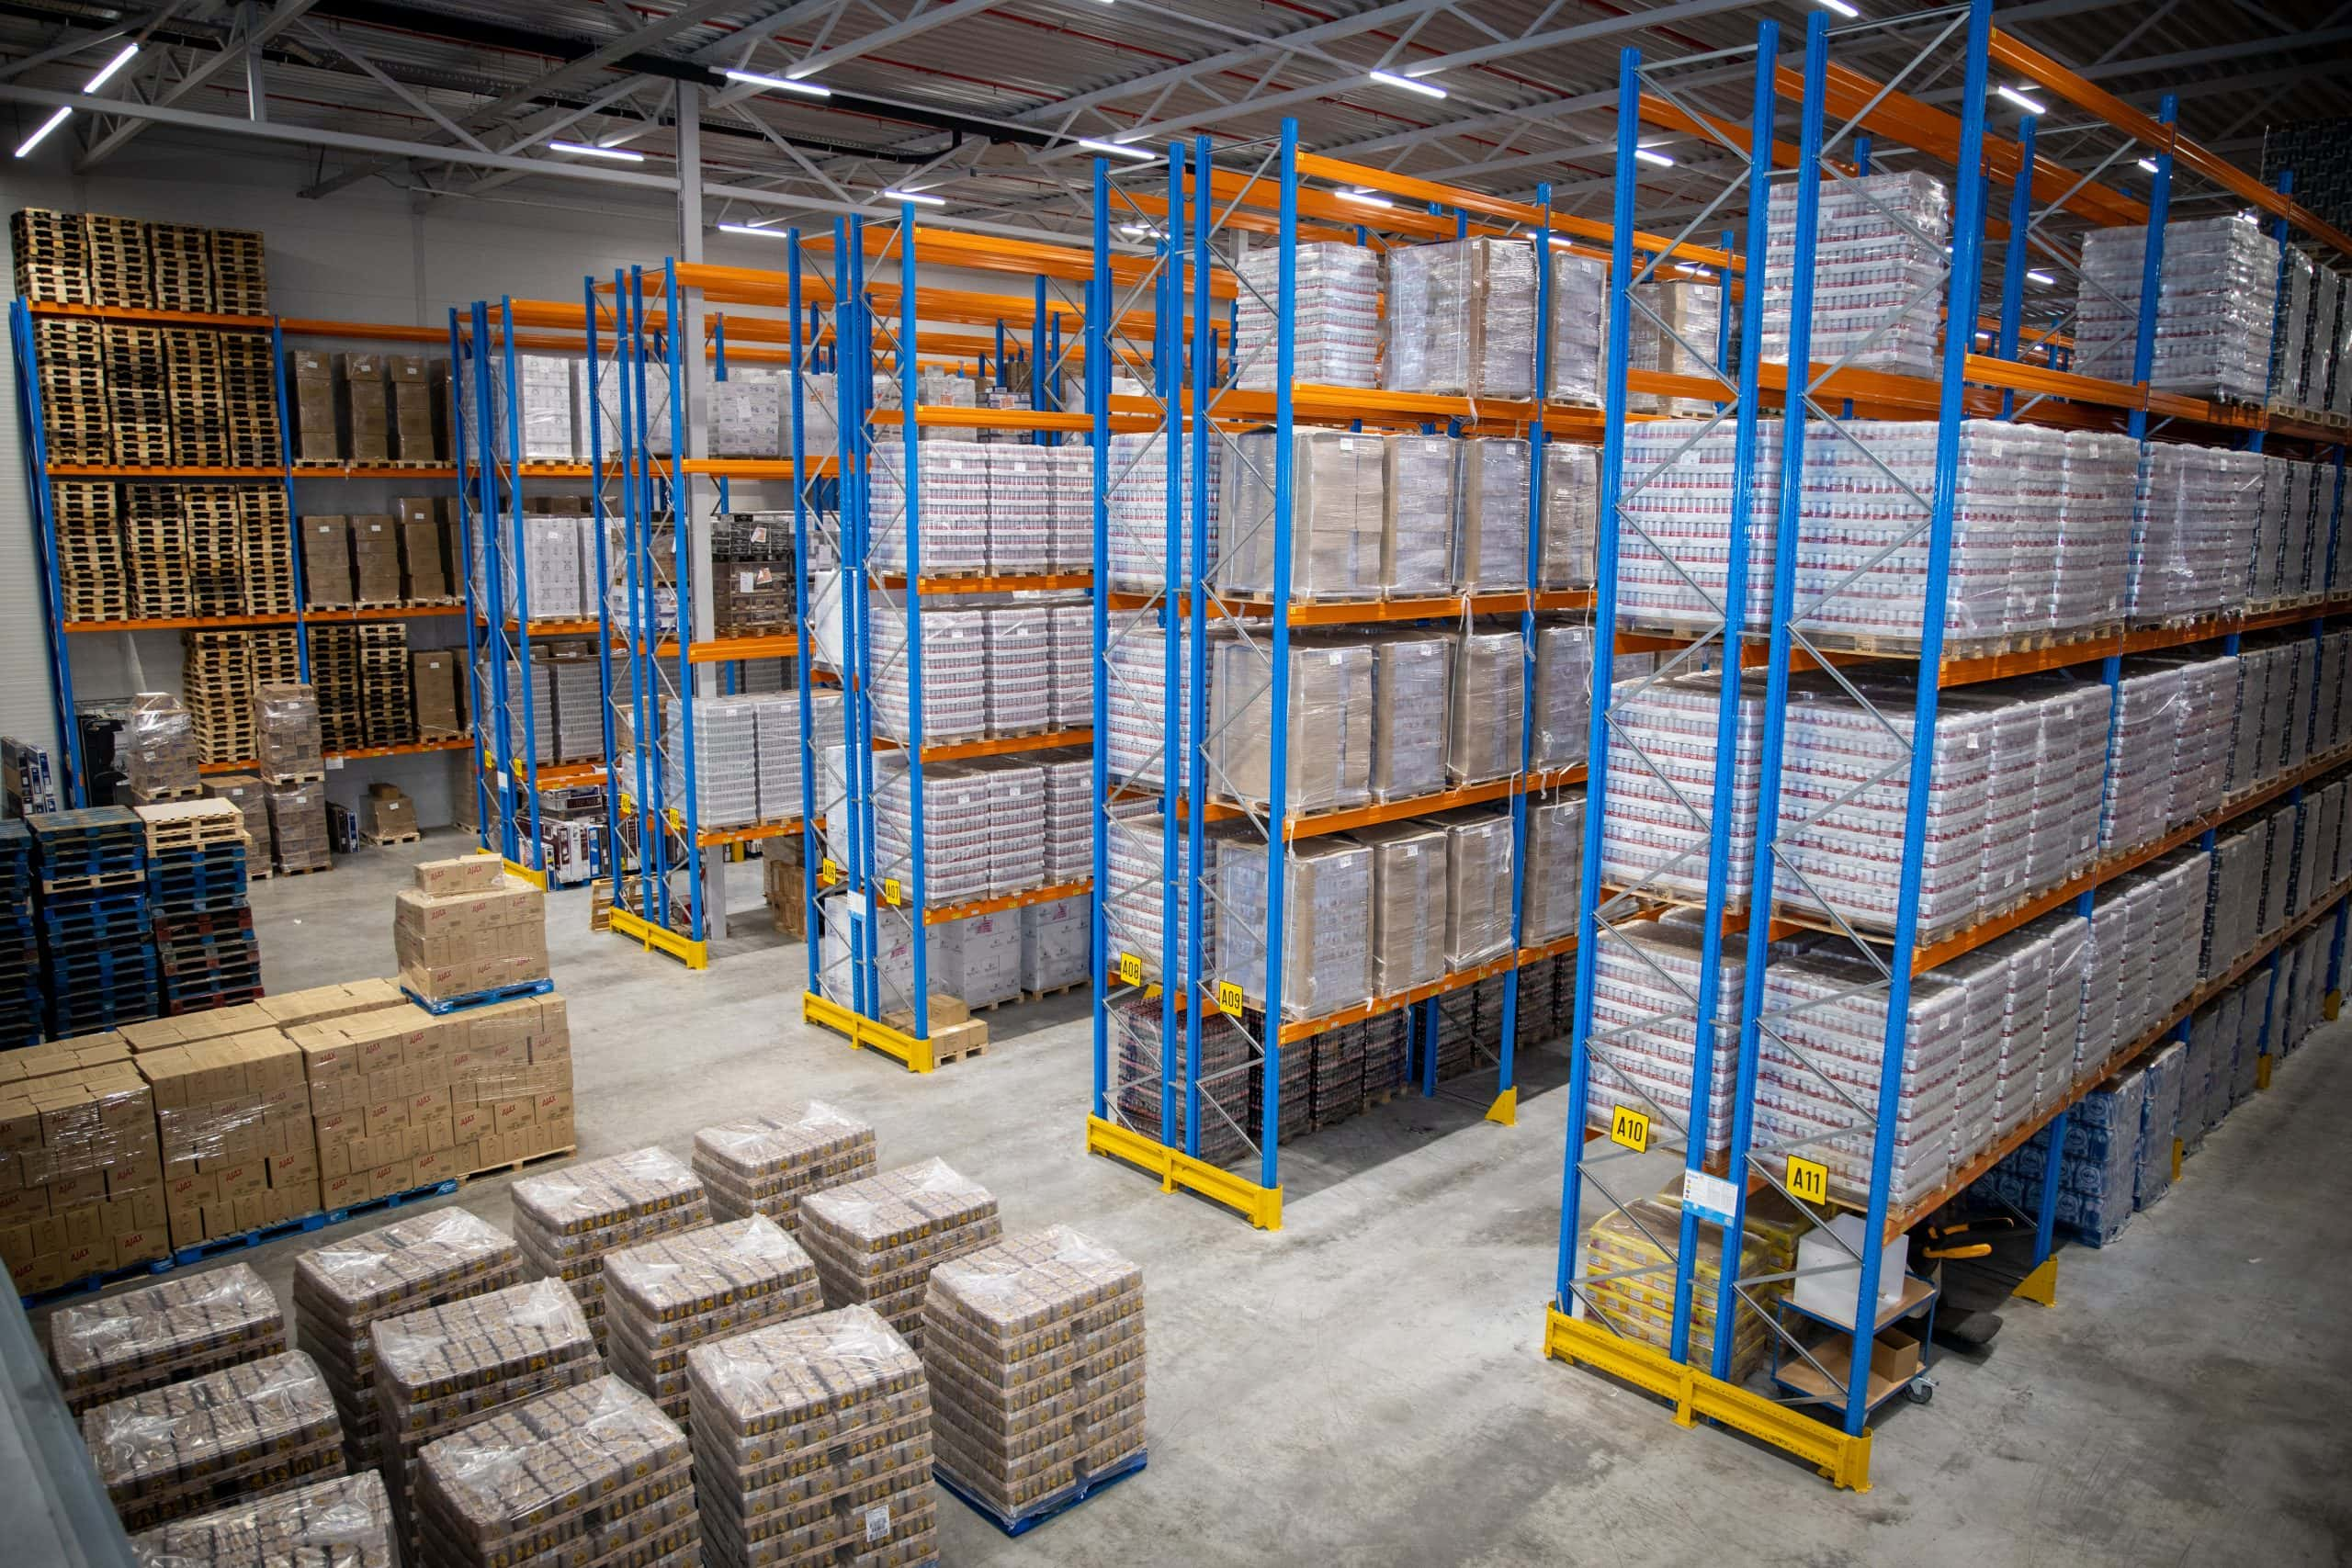 Warehouse Slotting: why it's one of the best ways to optimize inventory space